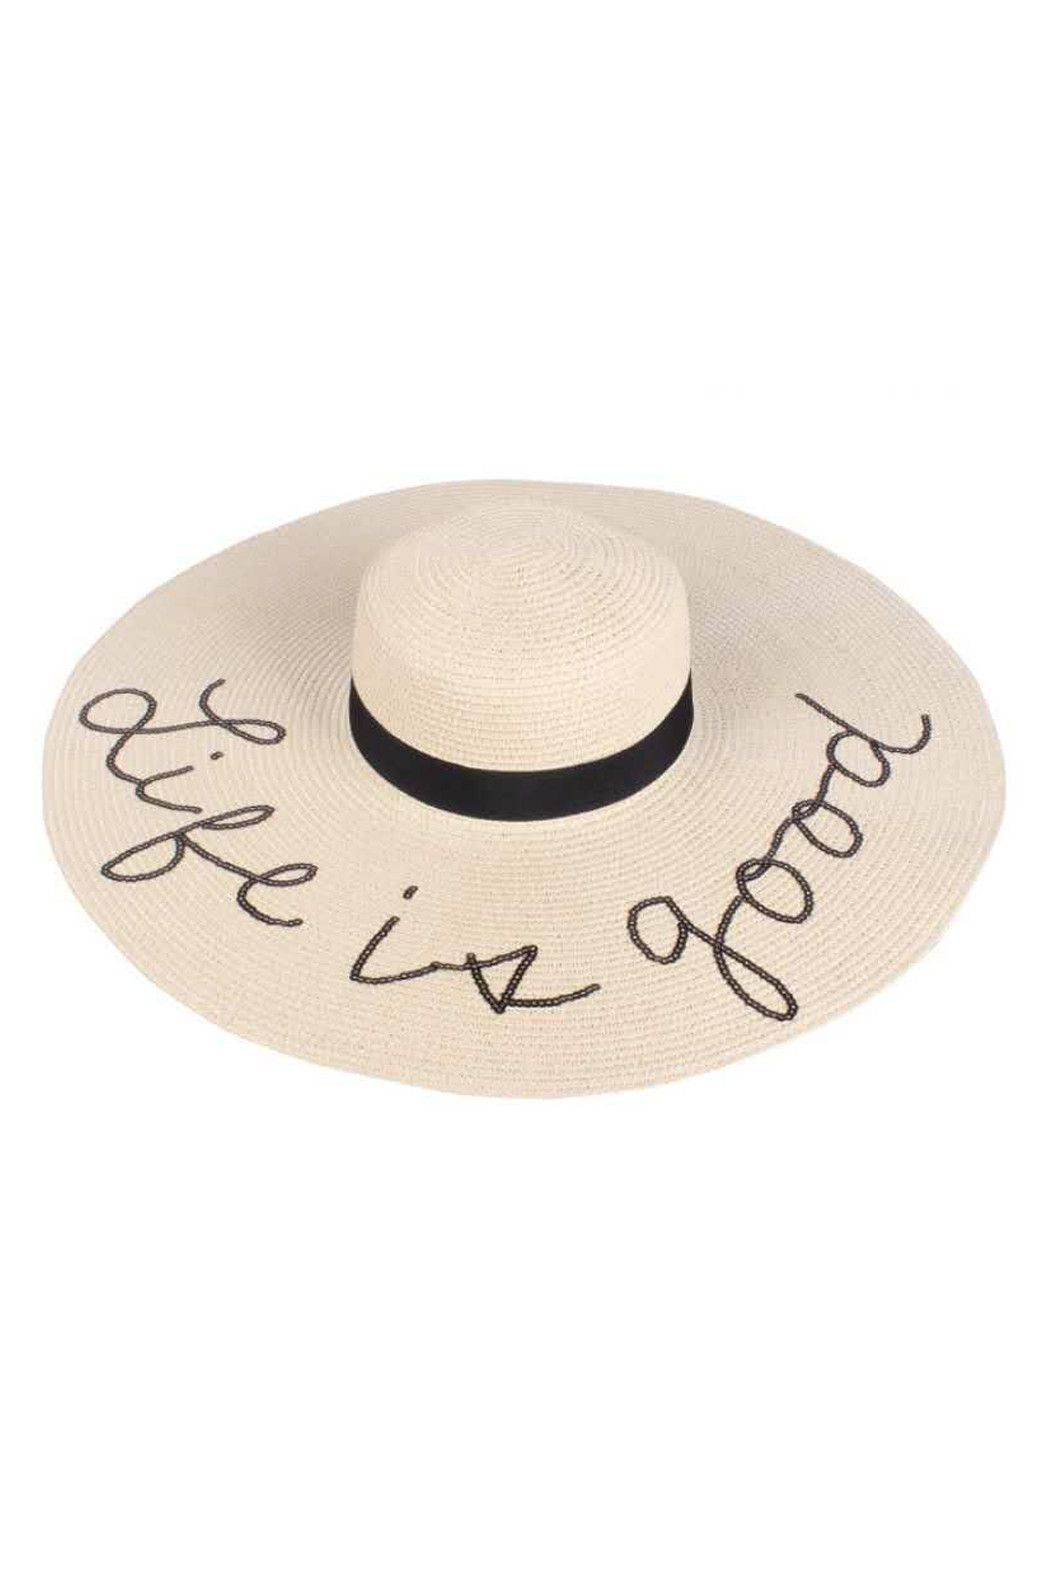 80459eb63d5 Beach Floppy Hats with Glitter Sequins Funny Verbiage